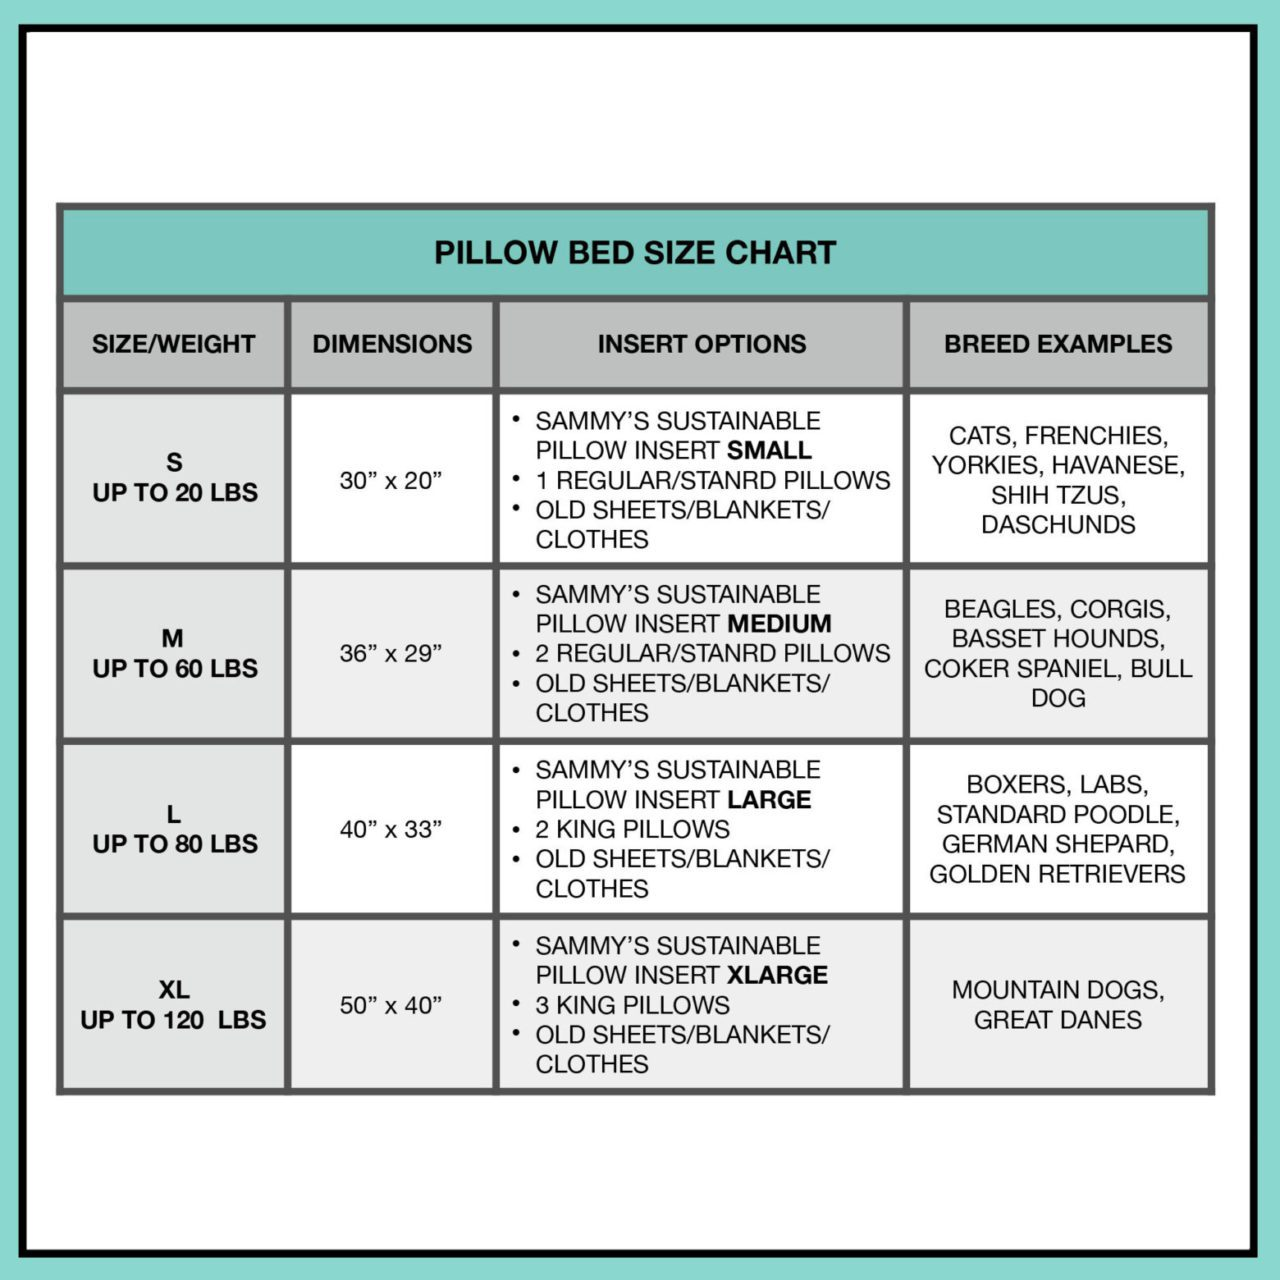 Pillow Bed Size Chart